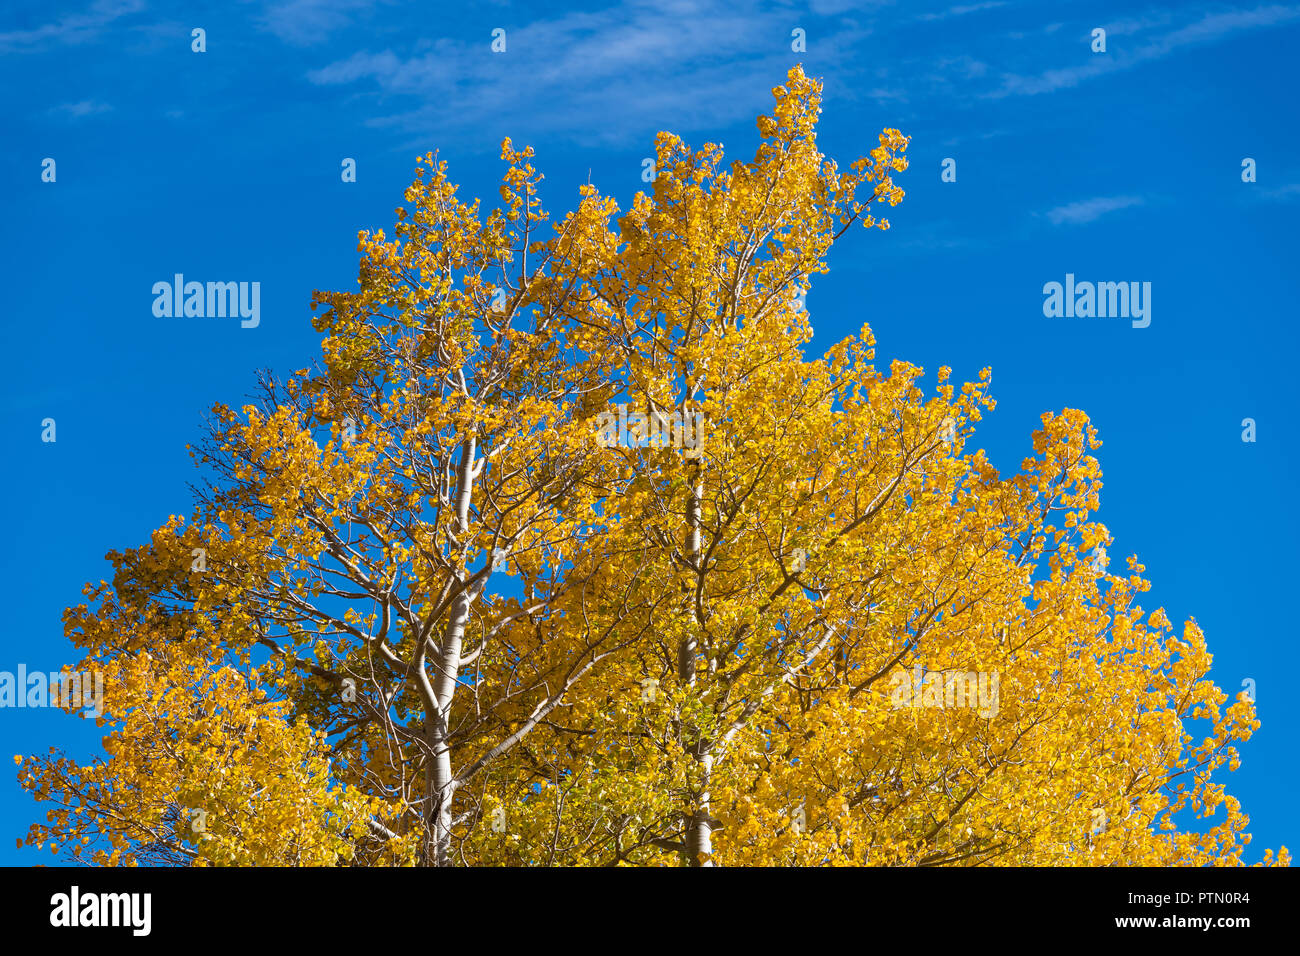 The treetops of aspen trees in golden autumn colors contrasted against a brilliant blue sky - Stock Image